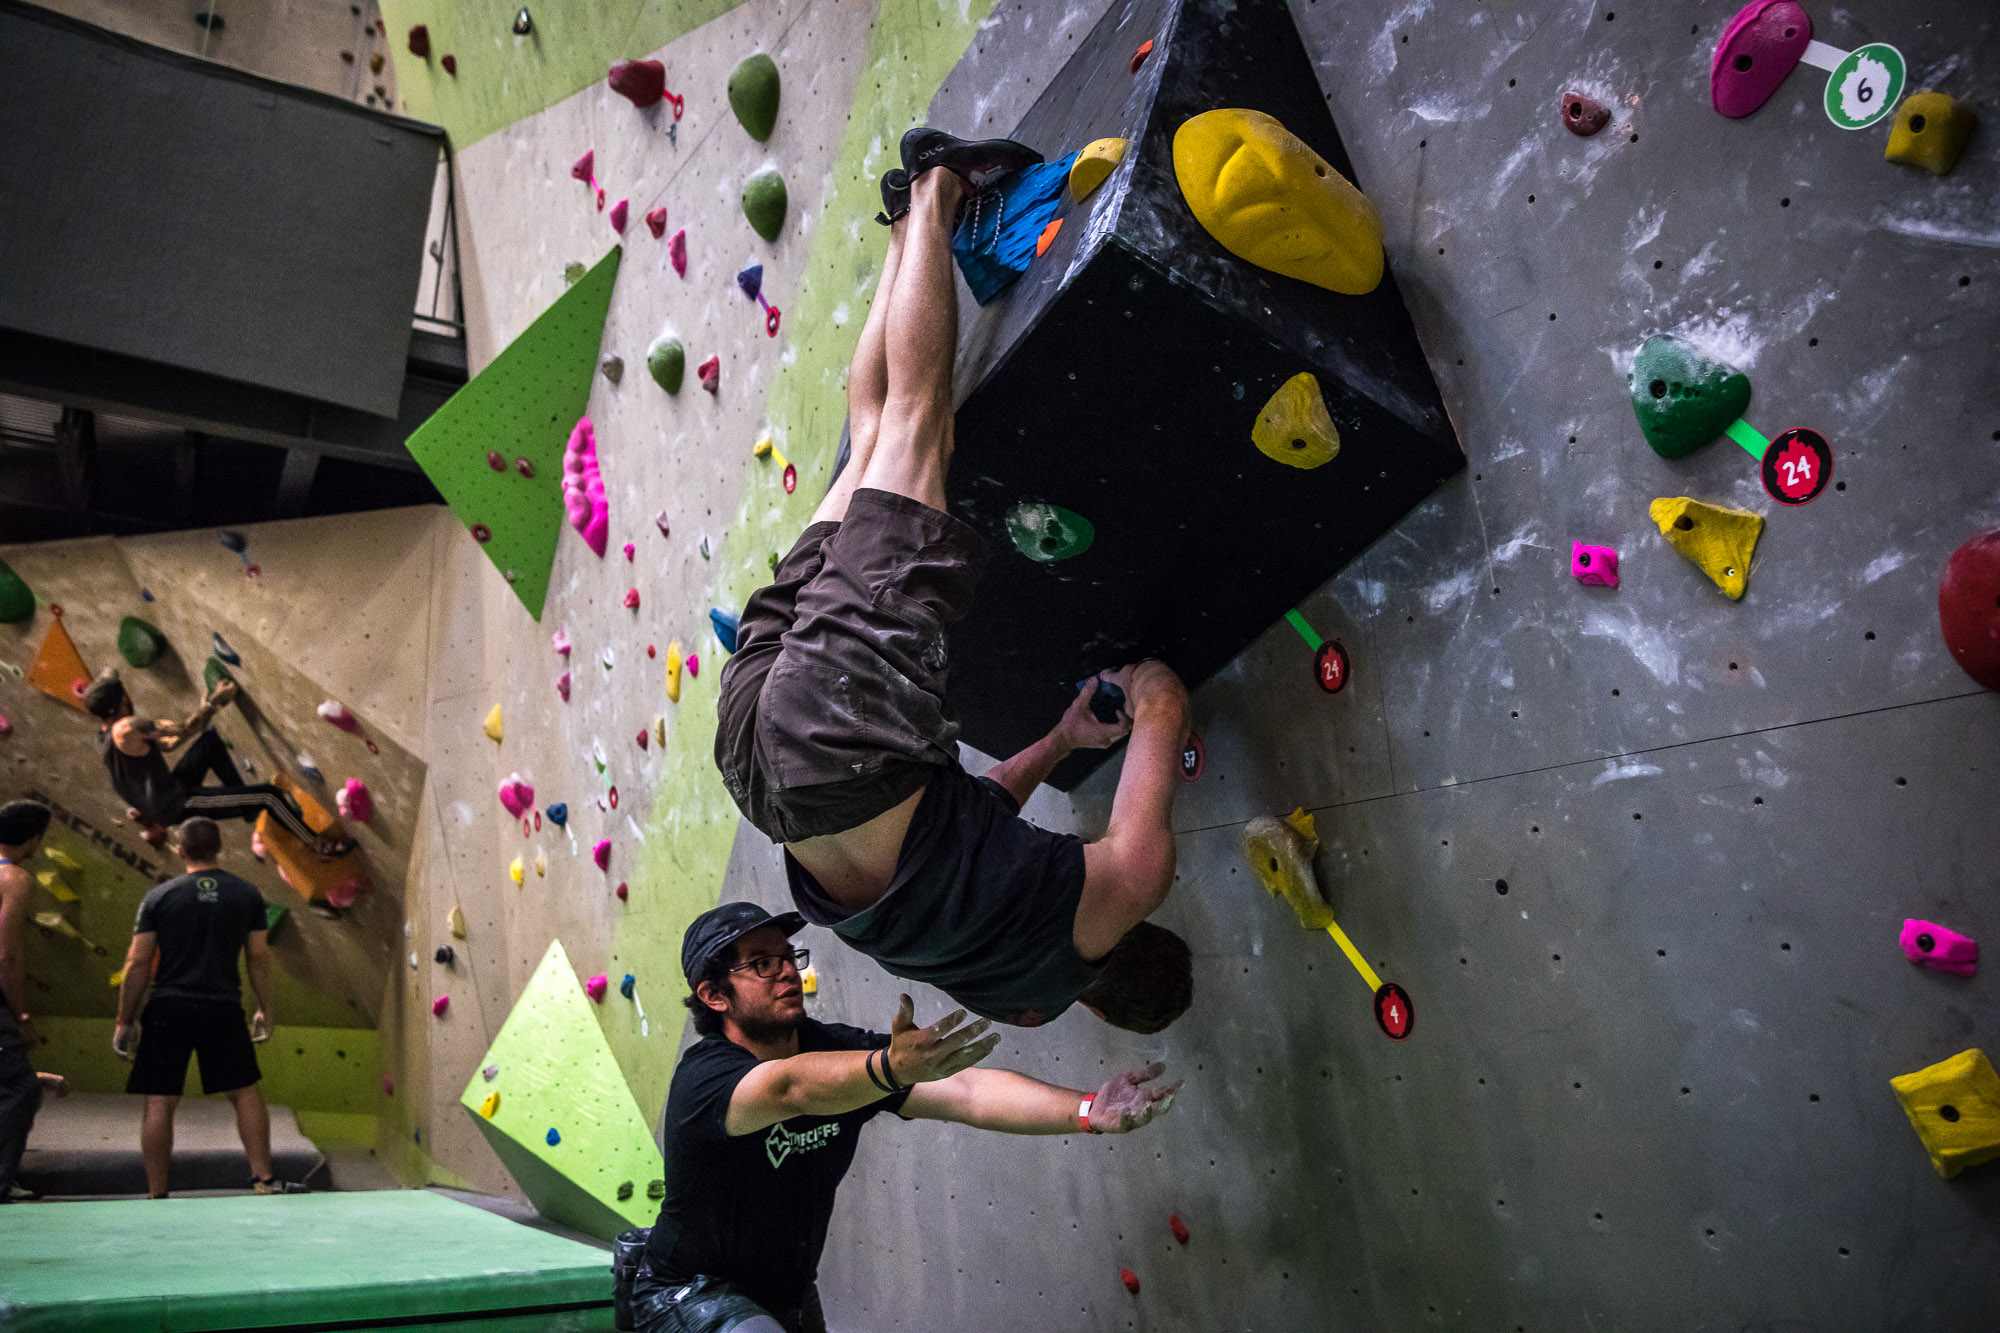 climb_nash_htc_2017_compressed_for_web-21.jpg